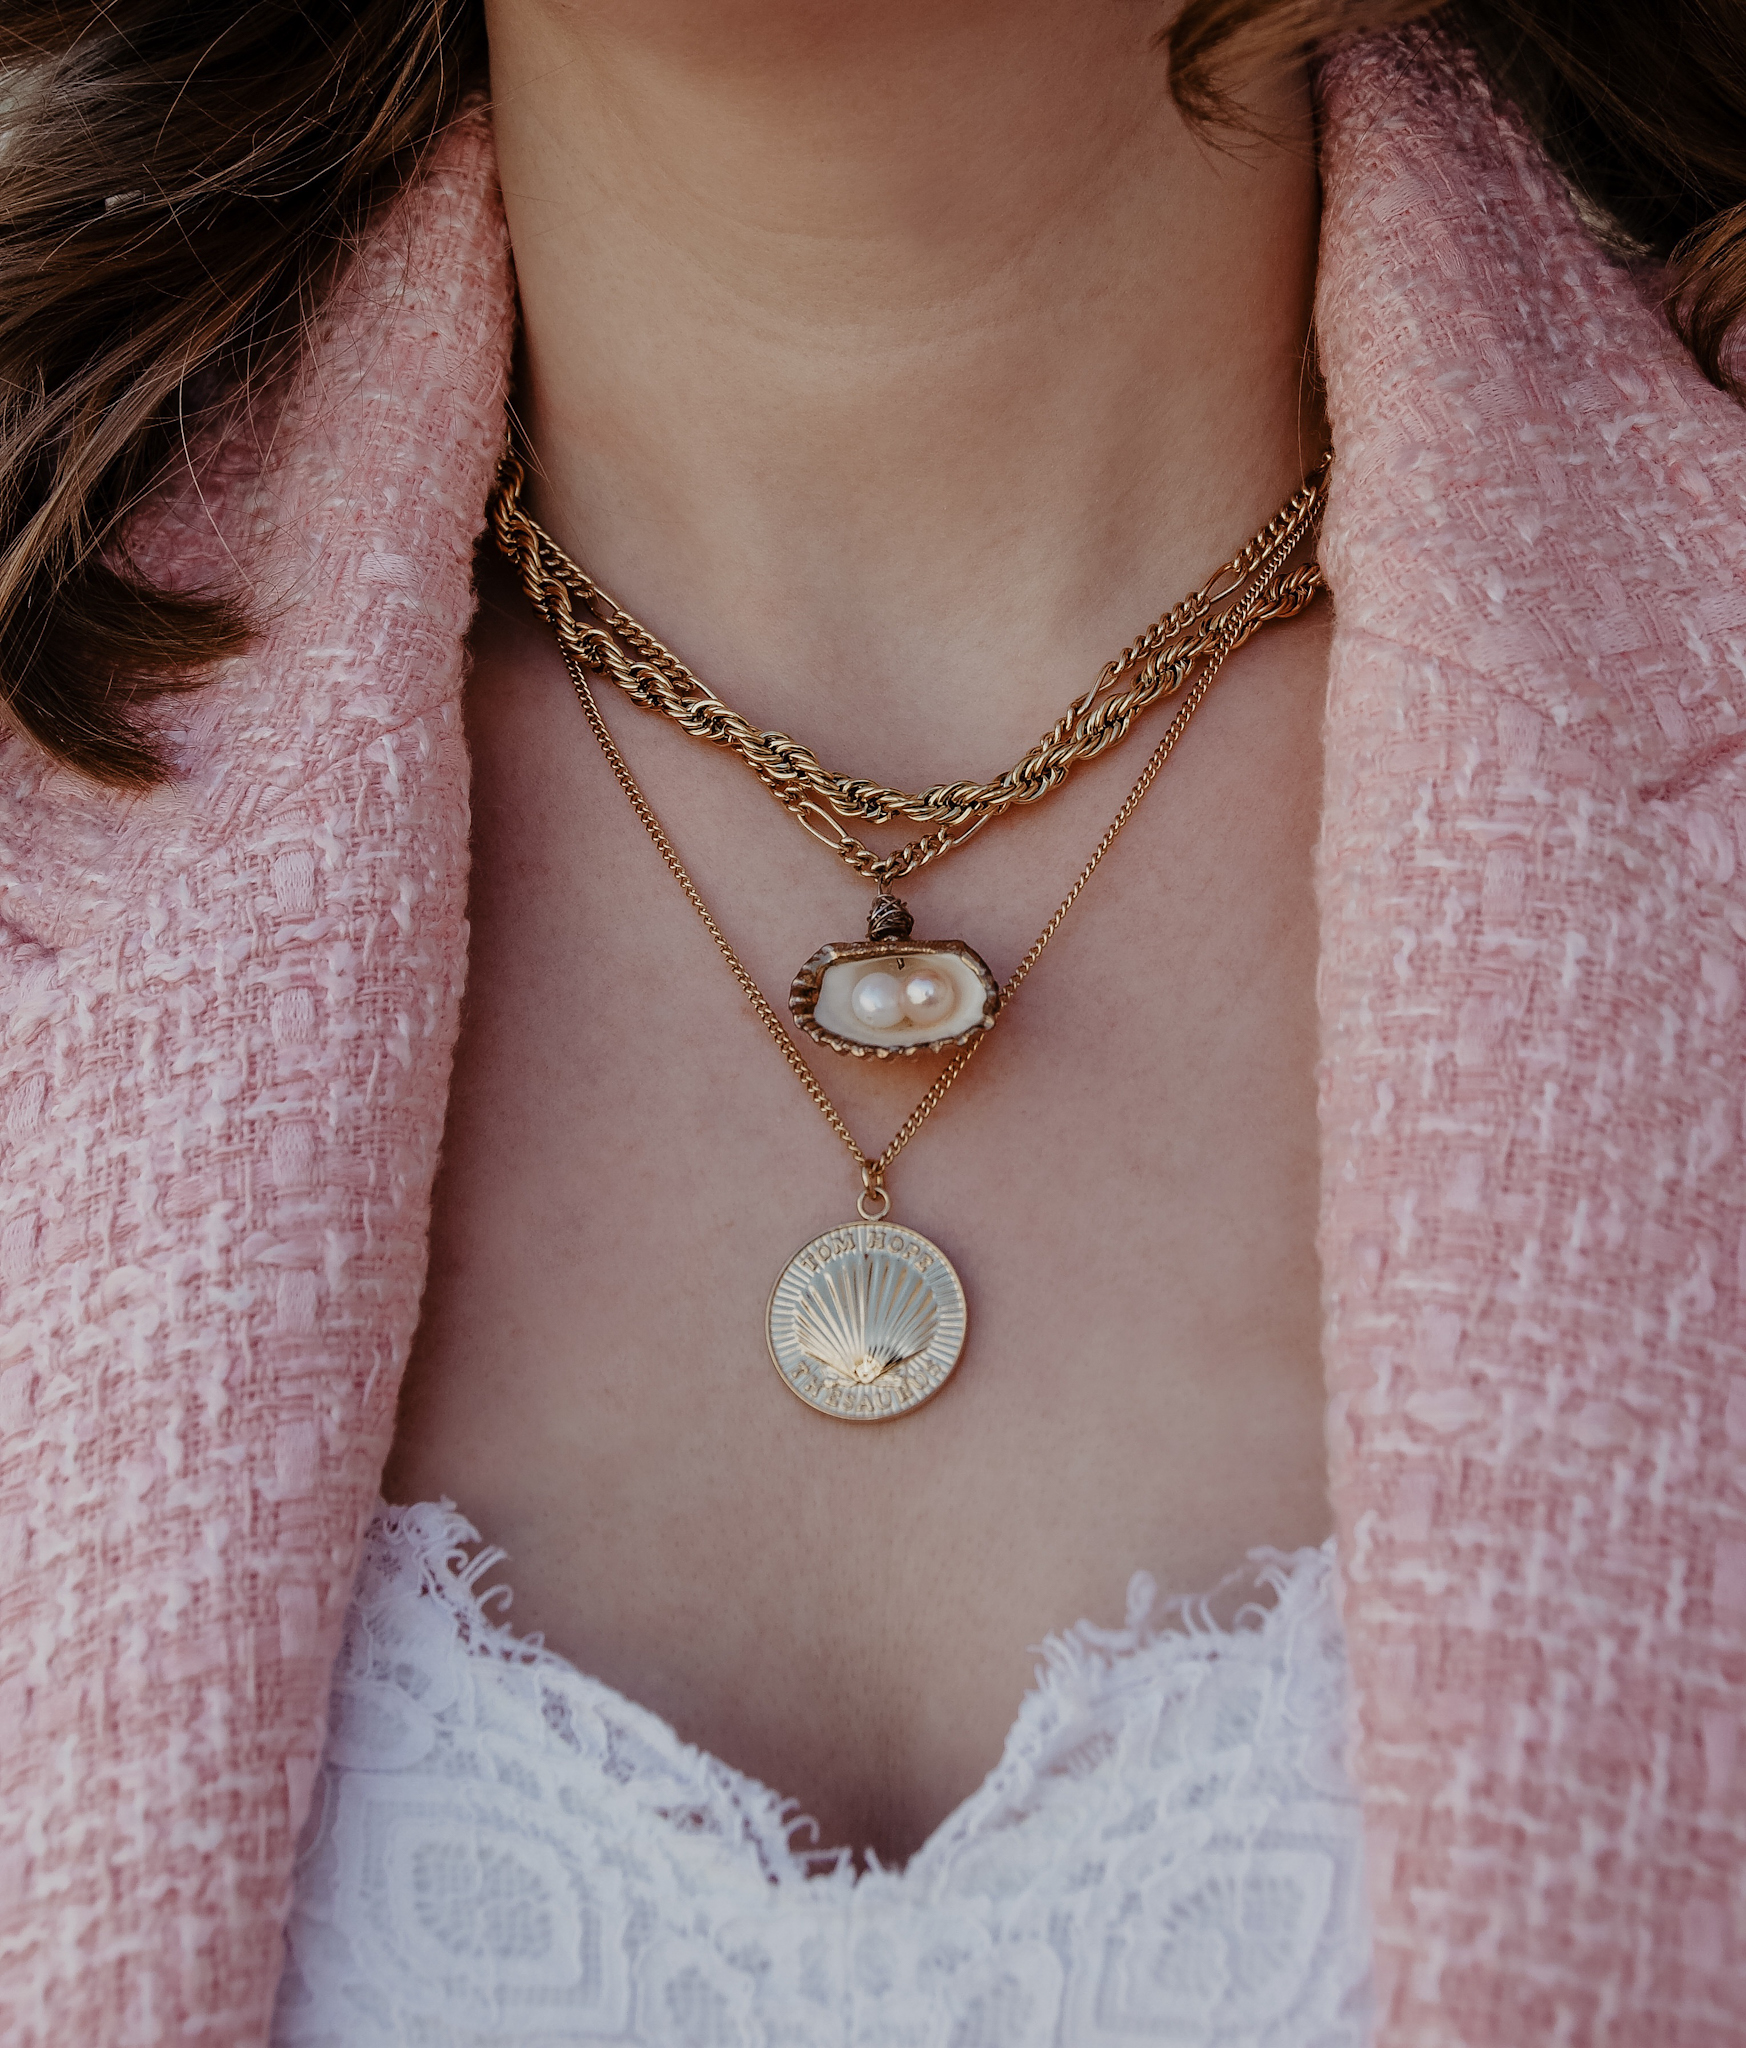 Statement necklaces gold, coin necklace, shell necklace